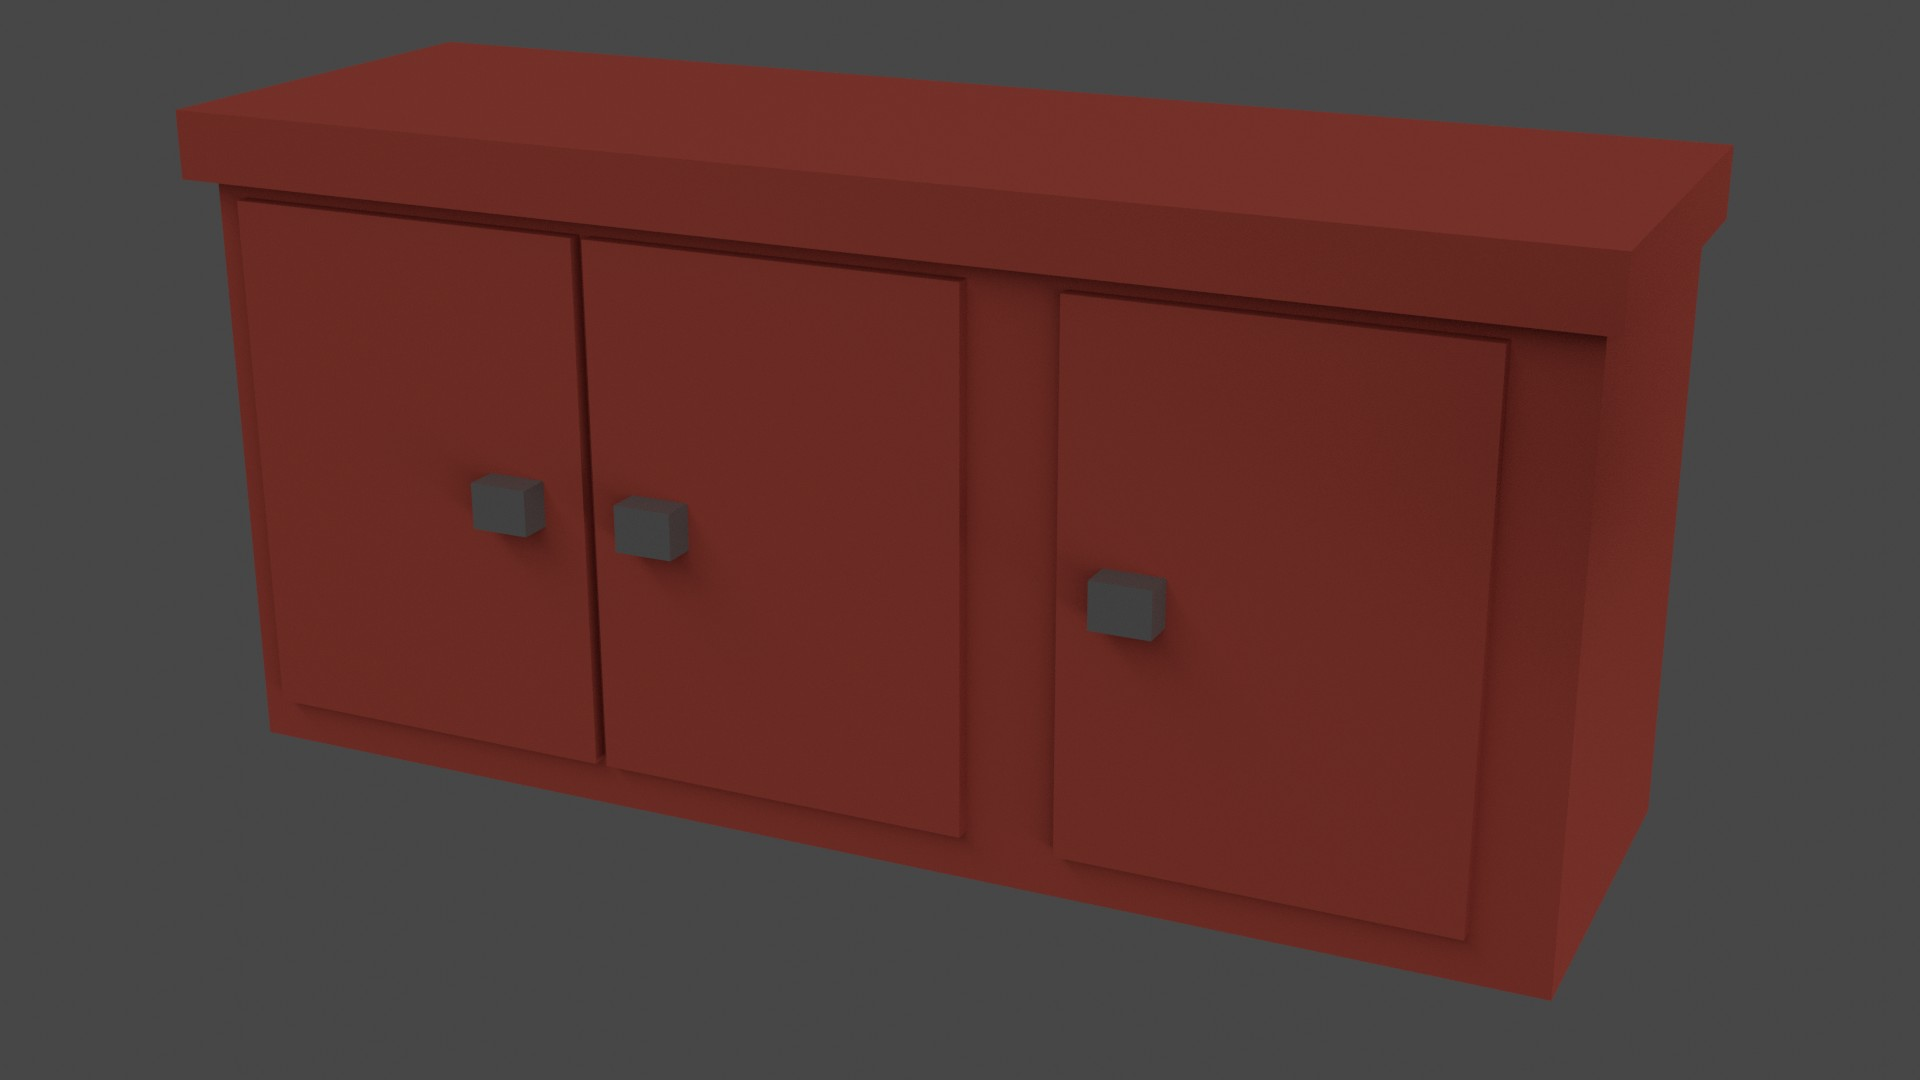 Low Poly Red Furniture 11